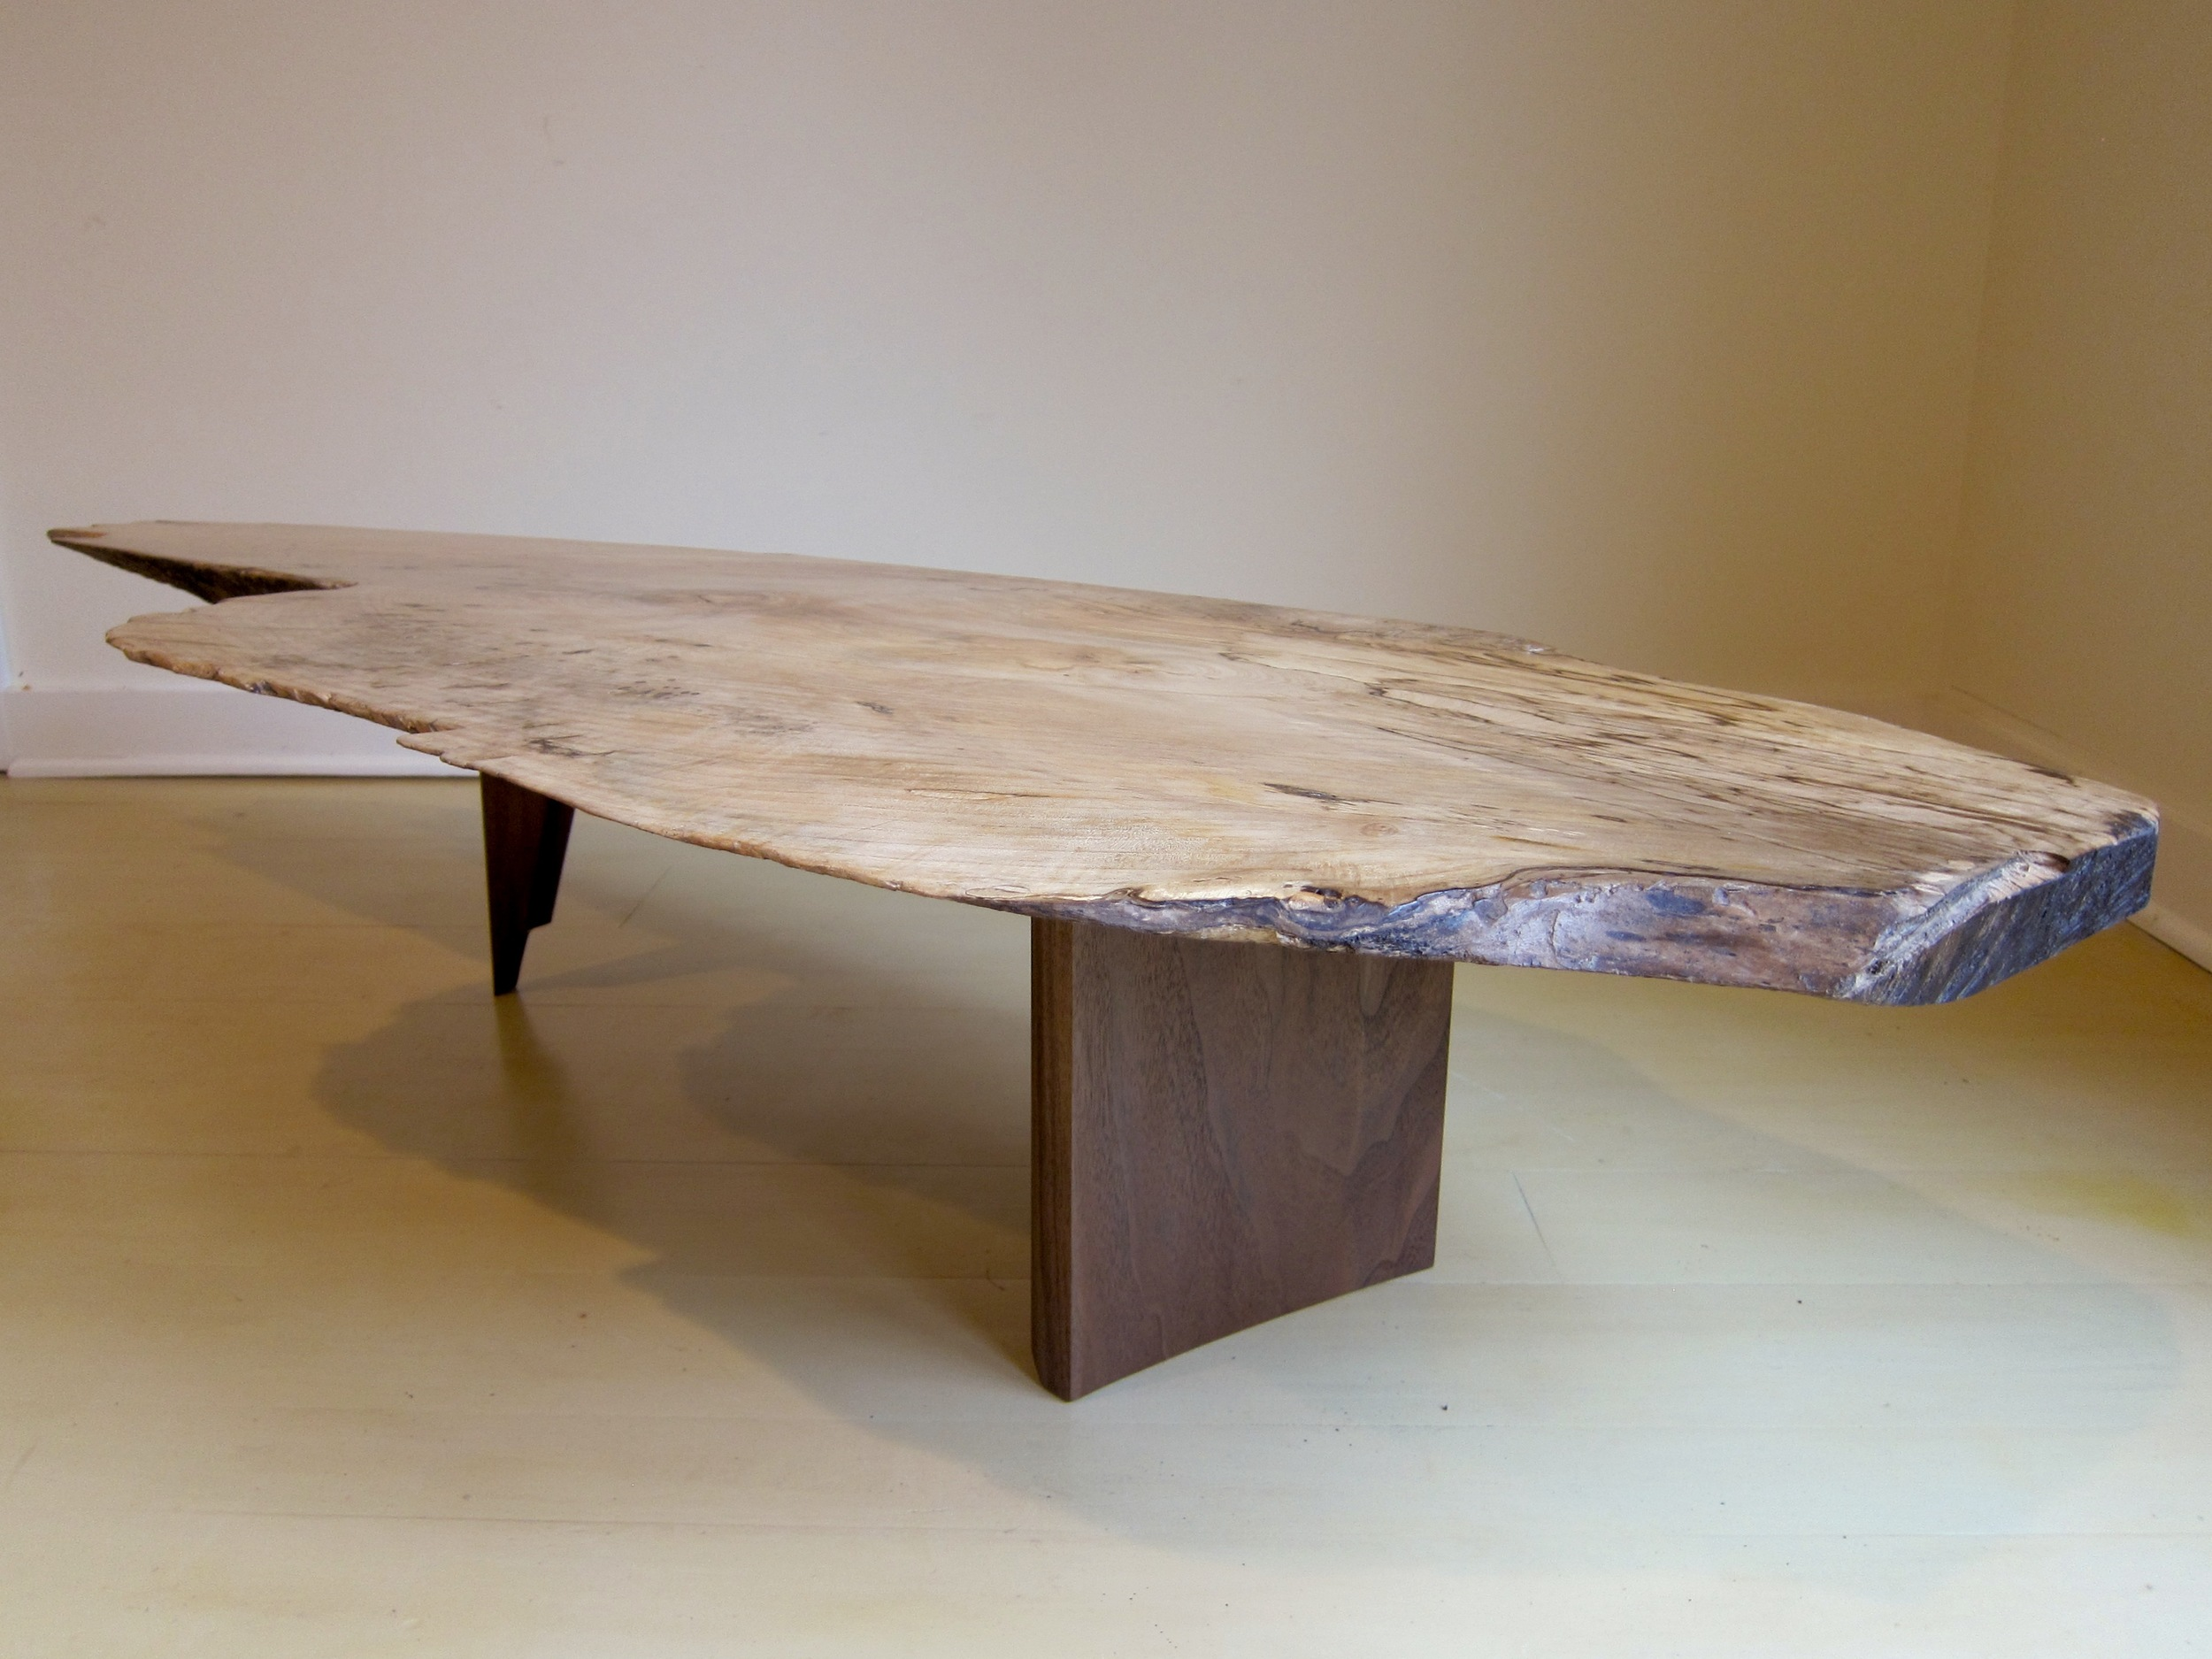 Johnny_A_Williams_Old_Woods_Road_Coffee_Table_1.JPG